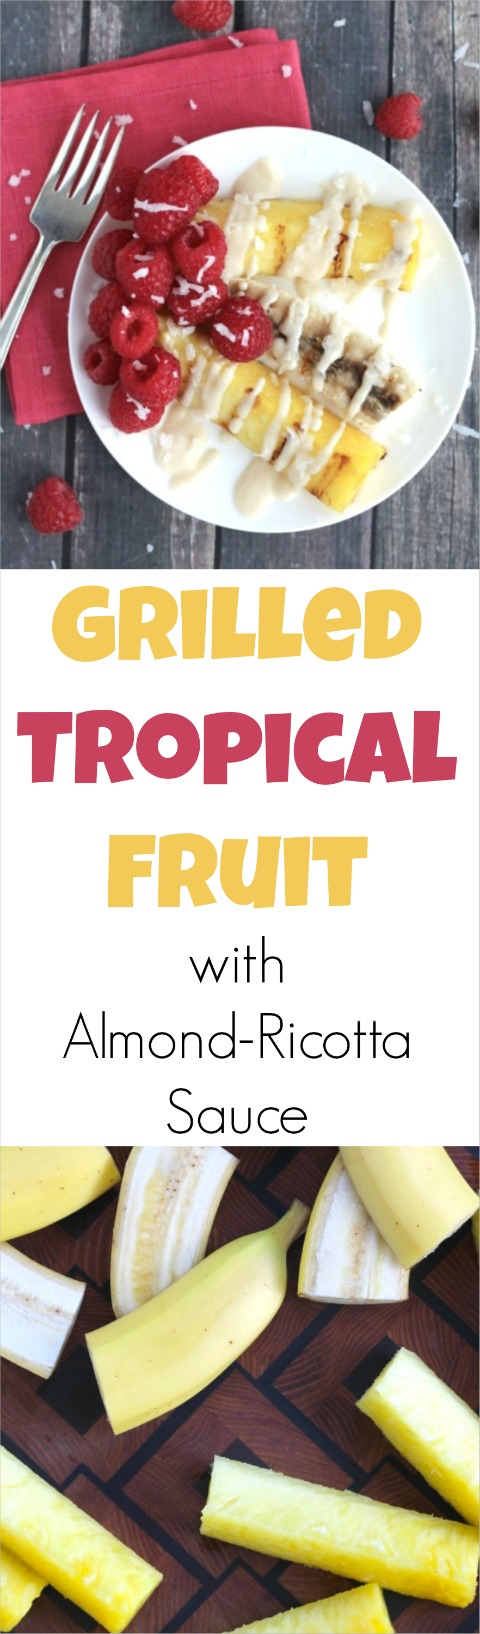 Grilled Tropical Fruit with Almond-Ricotta Sauce Recipe {www.TwoHealthyKitchens.com}